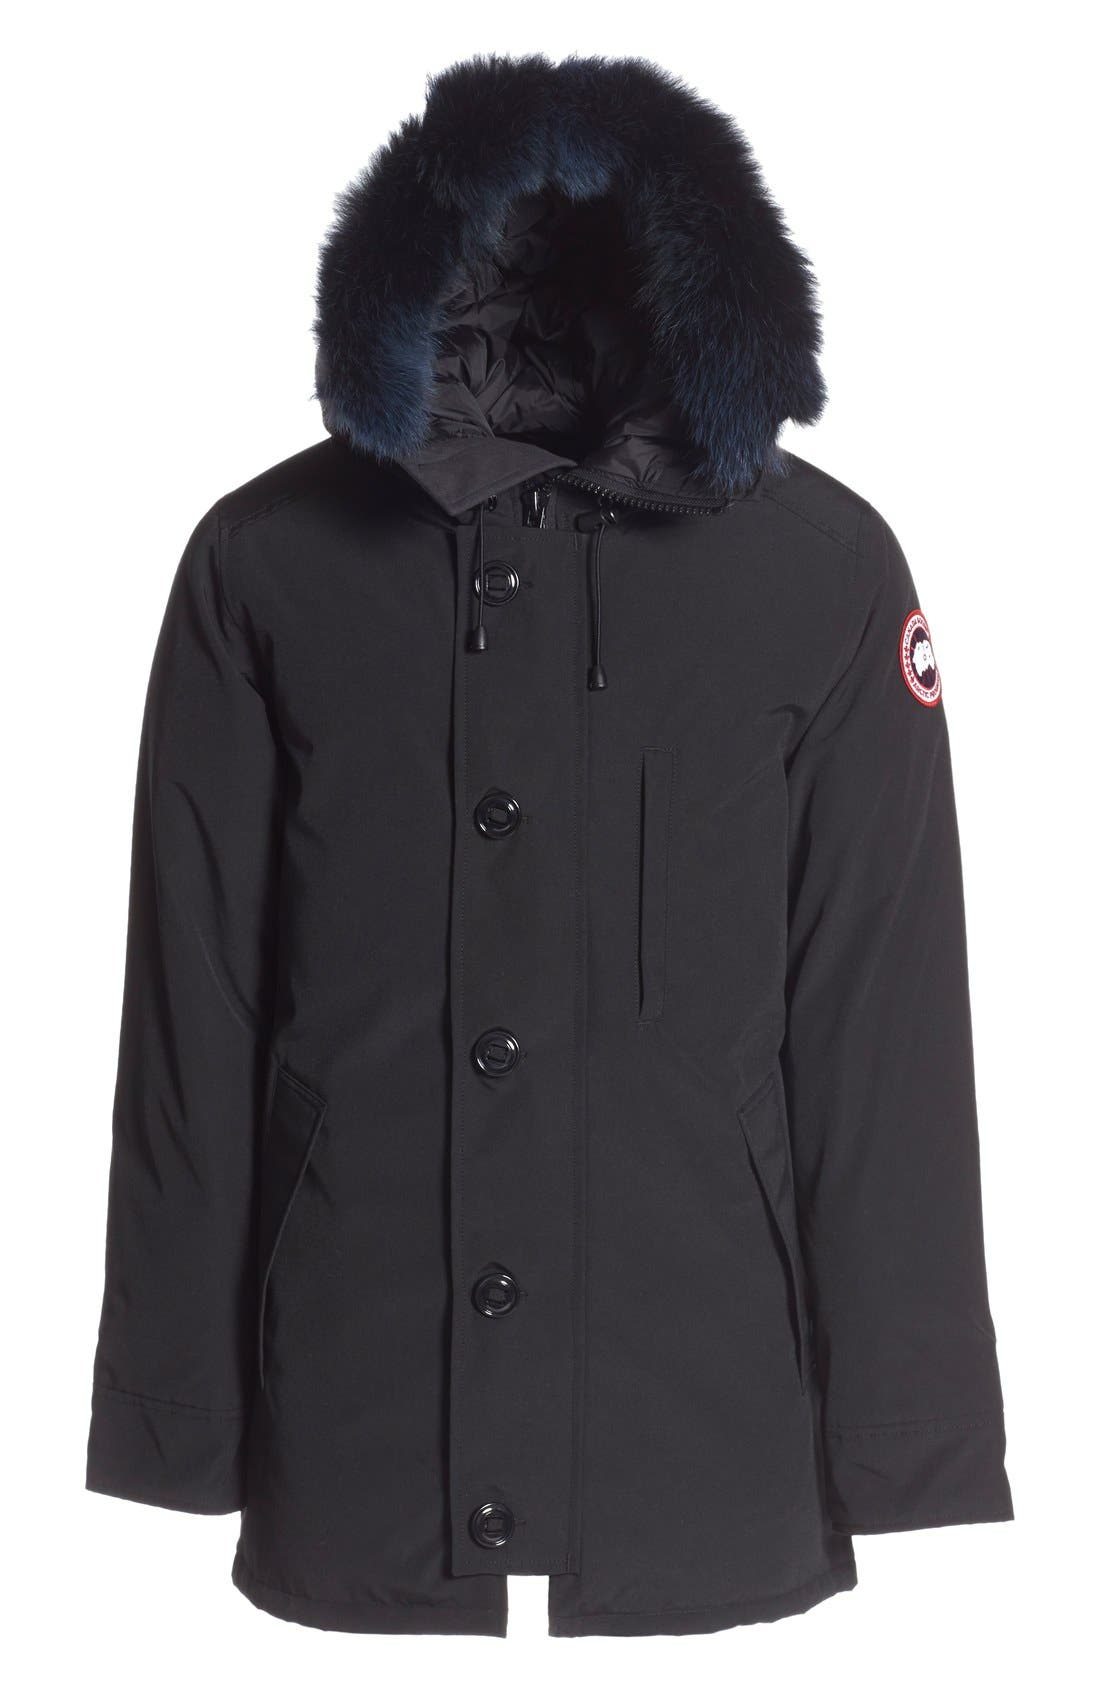 canada goose 'chateau' slim fit genuine coyote fur trim jacket